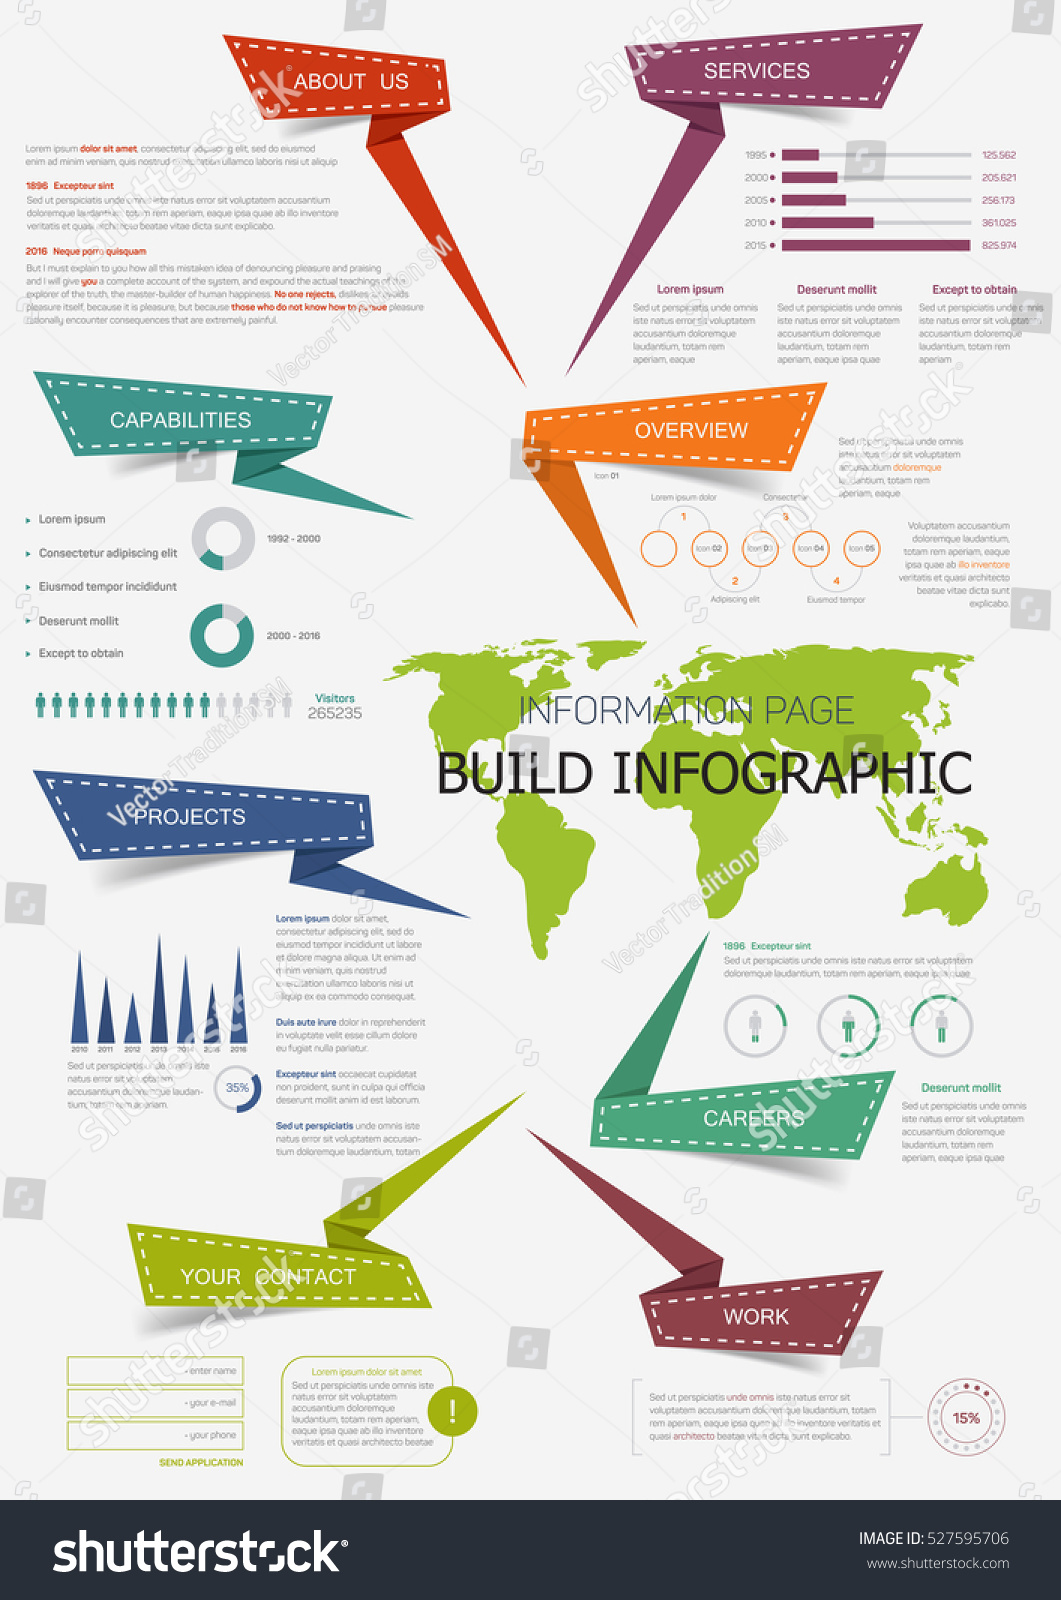 Build infographic world map presentation information stock vector build infographic with world map presentation information page with pie chart step diagram and gumiabroncs Gallery